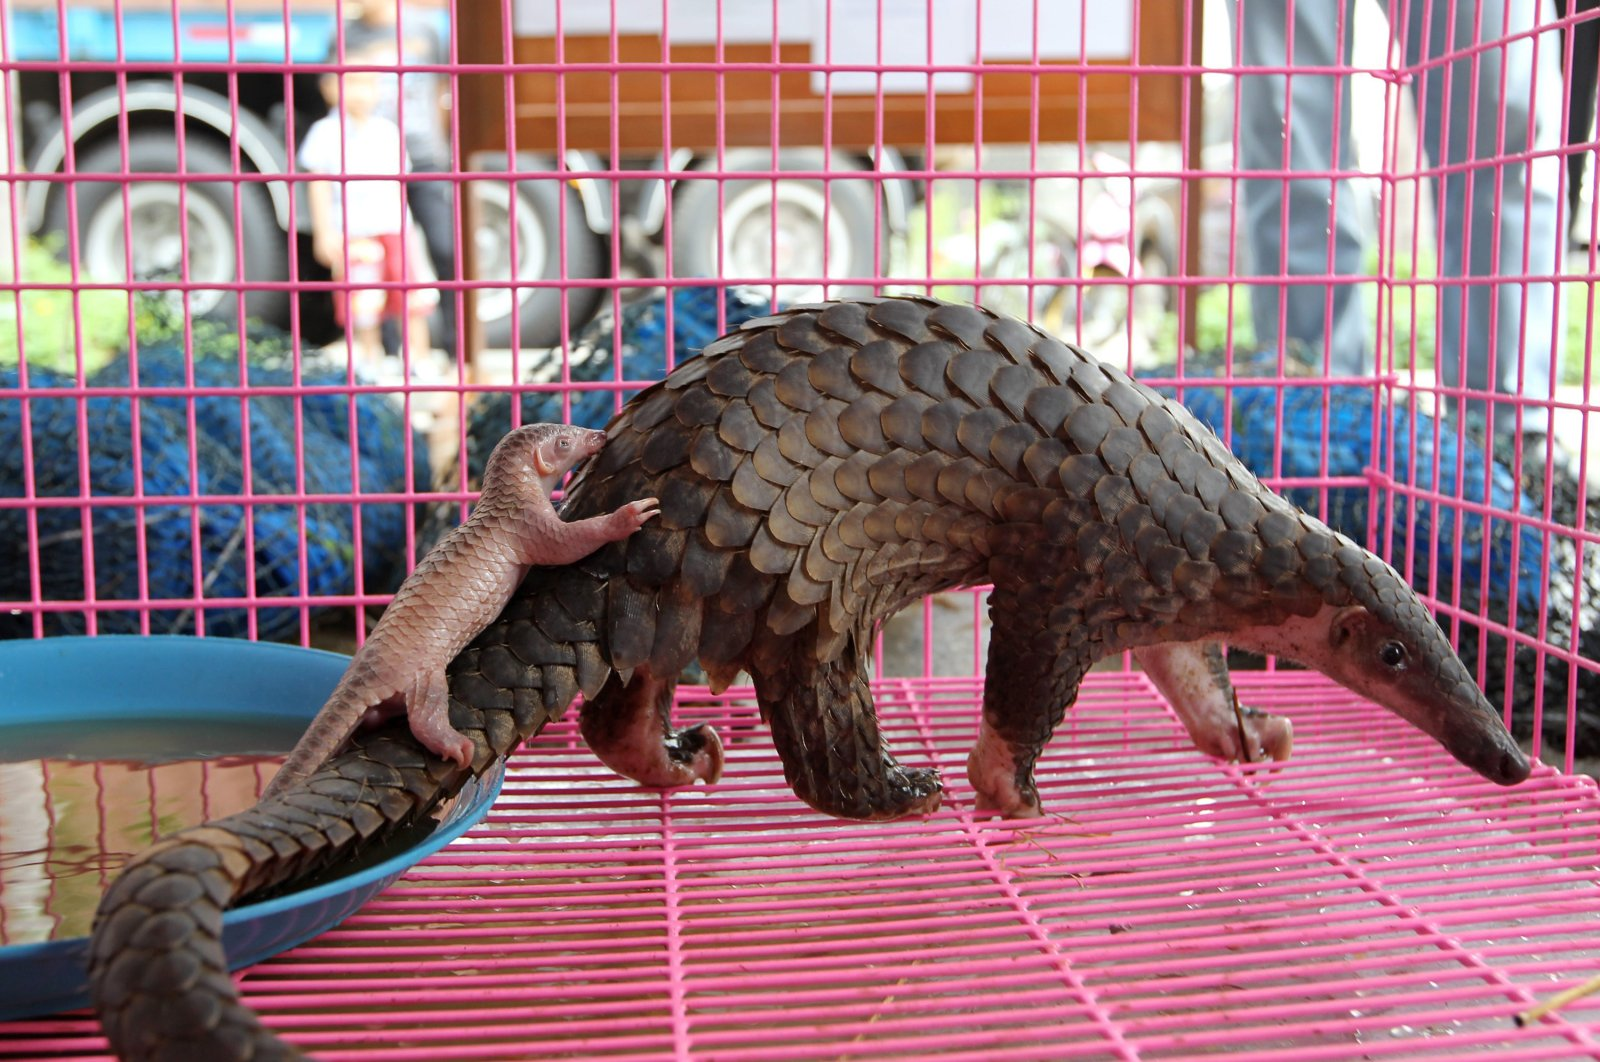 A newborn confiscated smuggled baby pangolin with its mother inside a cage during a news conference in Bangkok, Thailand, April 20, 2011. (EPA Photo)